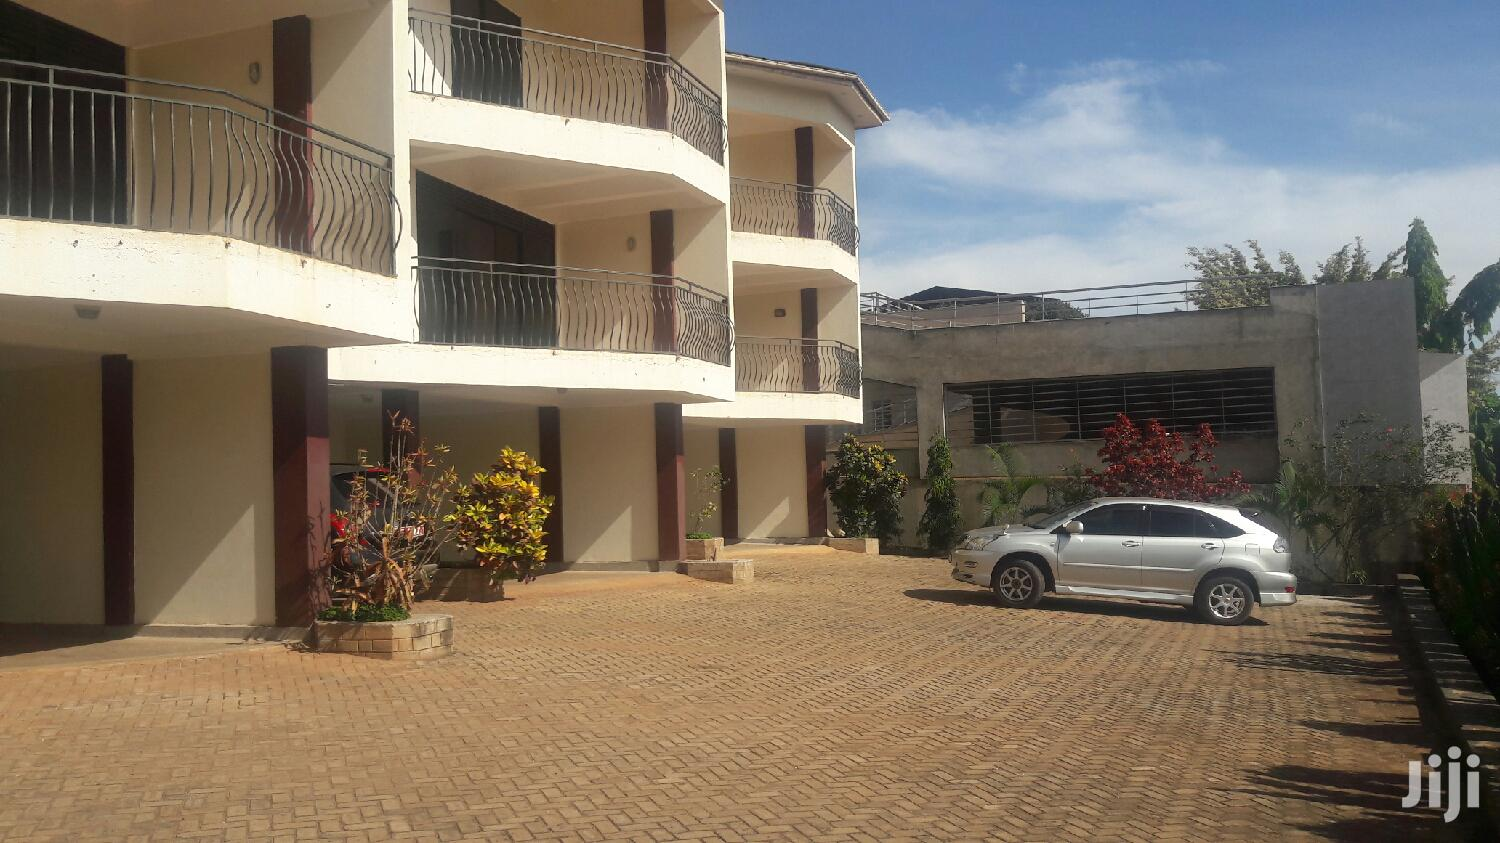 3 Bedroomed Duplex Apartment for Rent in Naguru | Houses & Apartments For Rent for sale in Kampala, Central Region, Uganda